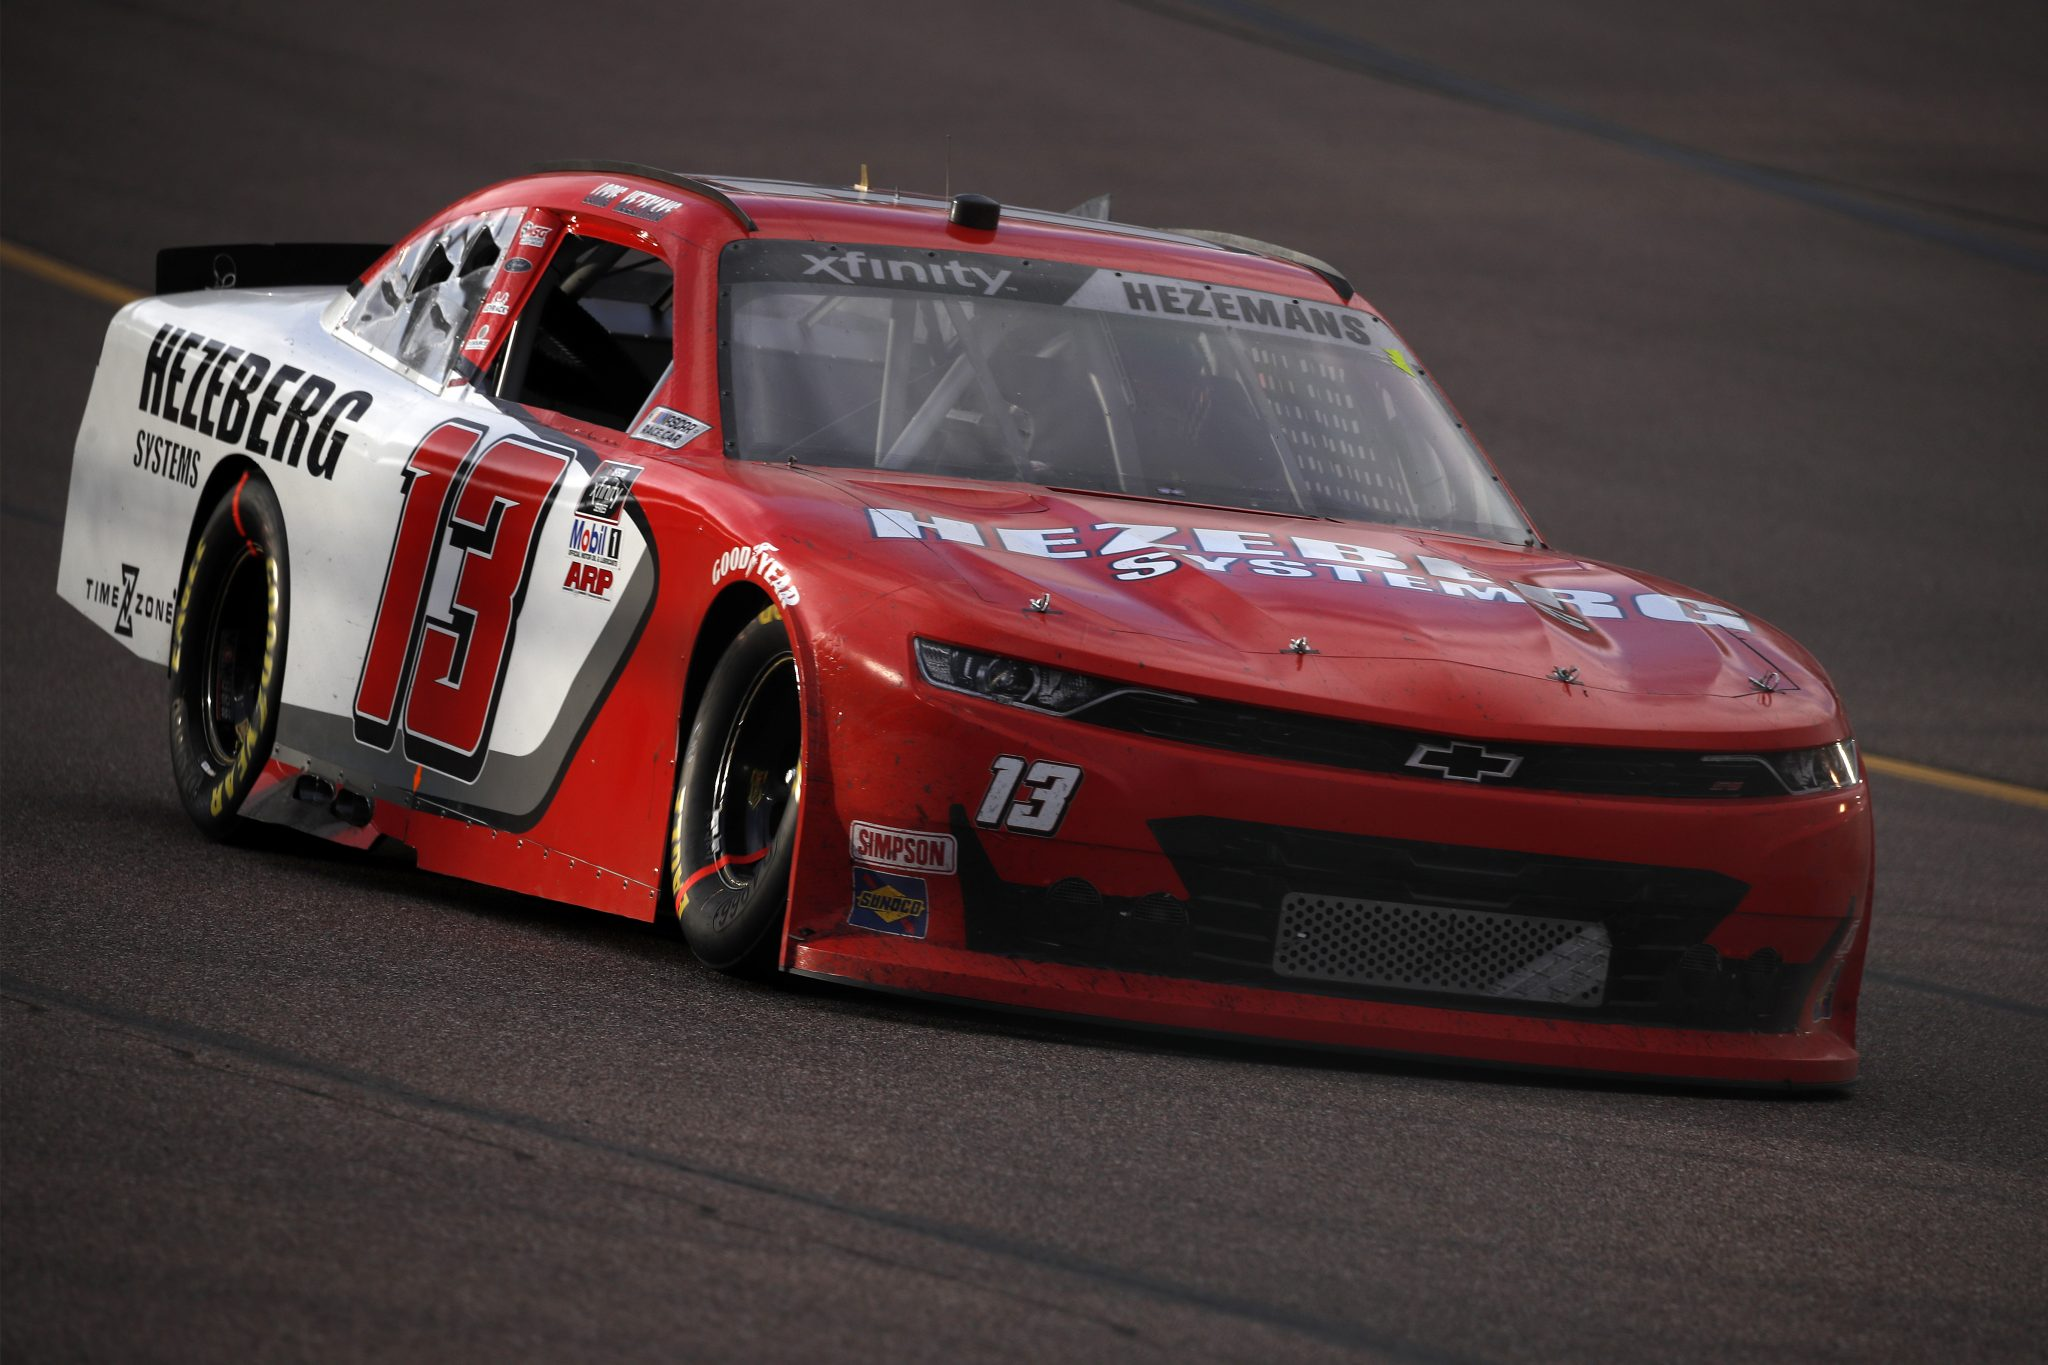 AVONDALE, ARIZONA - MARCH 13: Loris Hezemans, driver of the #13 Hezeberg Systems Chevrolet, drives during the NASCAR Xfinity Series Call 811 Before You Dig 200 presented by Arizona 811 at Phoenix Raceway on March 13, 2021 in Avondale, Arizona. (Photo by Christian Petersen/Getty Images) | Getty Images